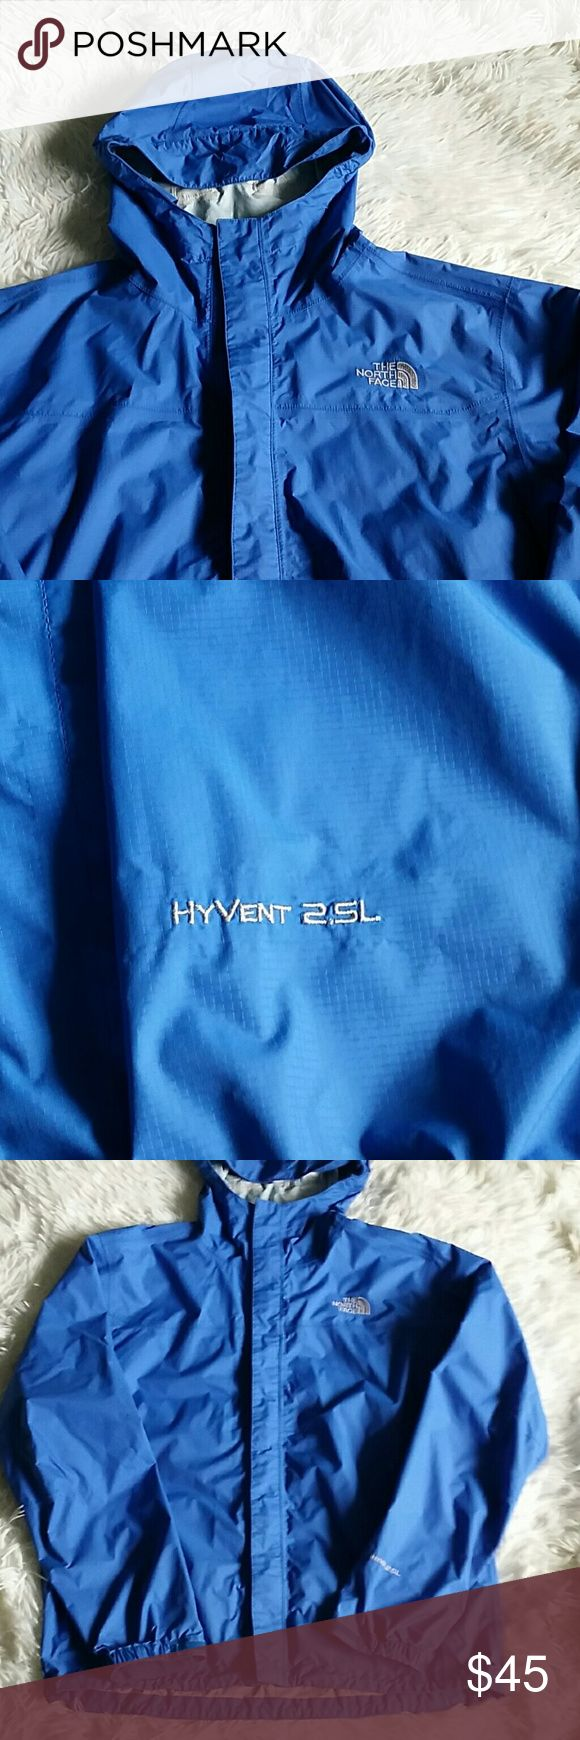 North Face Men's jacket EUC North Face Hyvent 2.5L.  Re-Poshing because my boys don't want blue - I think it's a beautiful blue.  There is one area inside that is showing wear (shown in picture 5). All zippers and velcro in working order. North Face Jackets & Coats Windbreakers